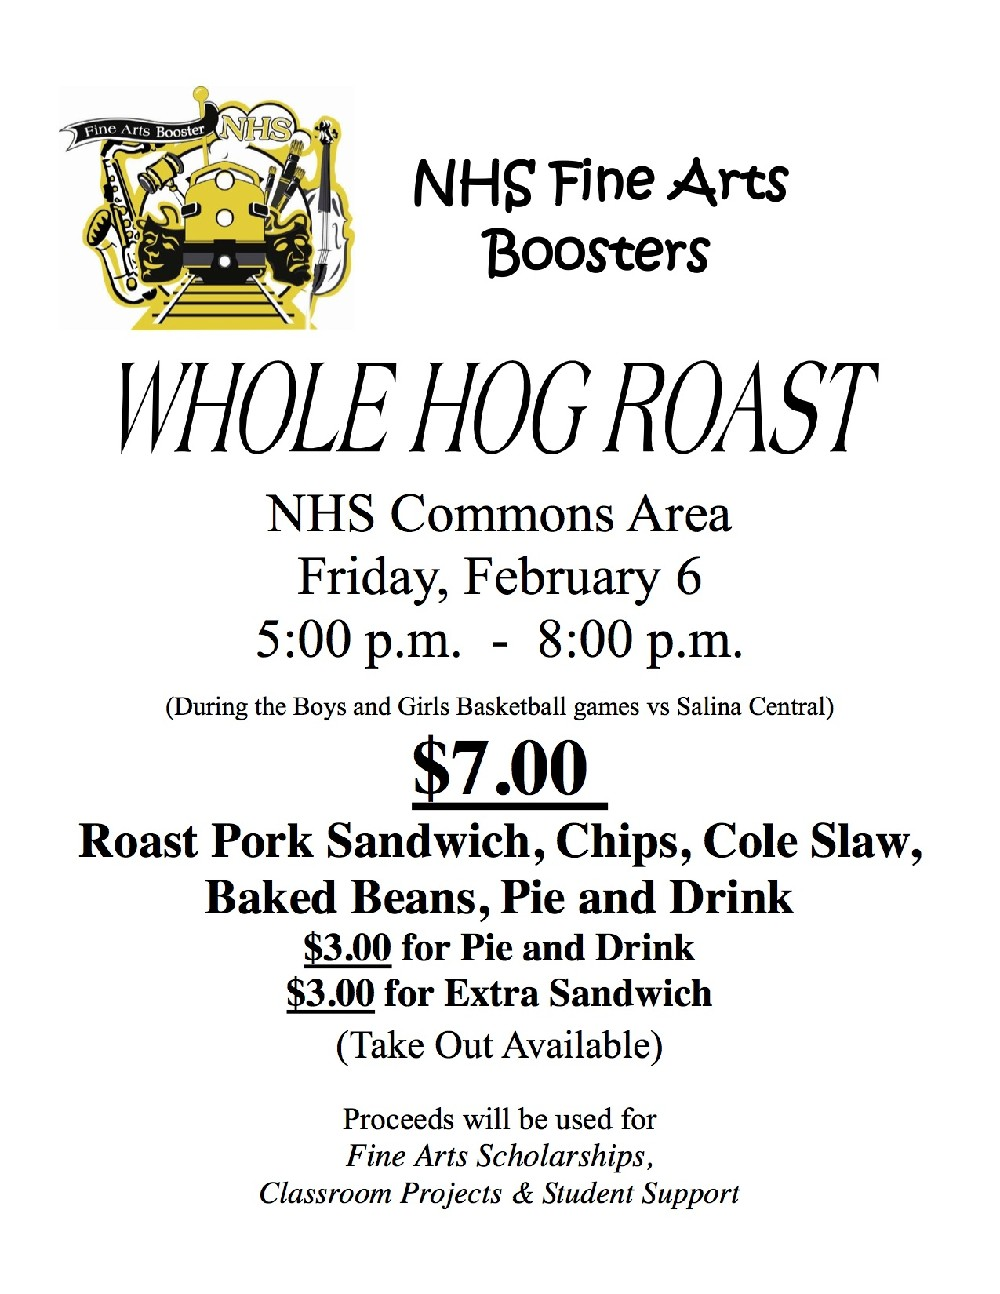 NHS Whole Hog Roast Poster